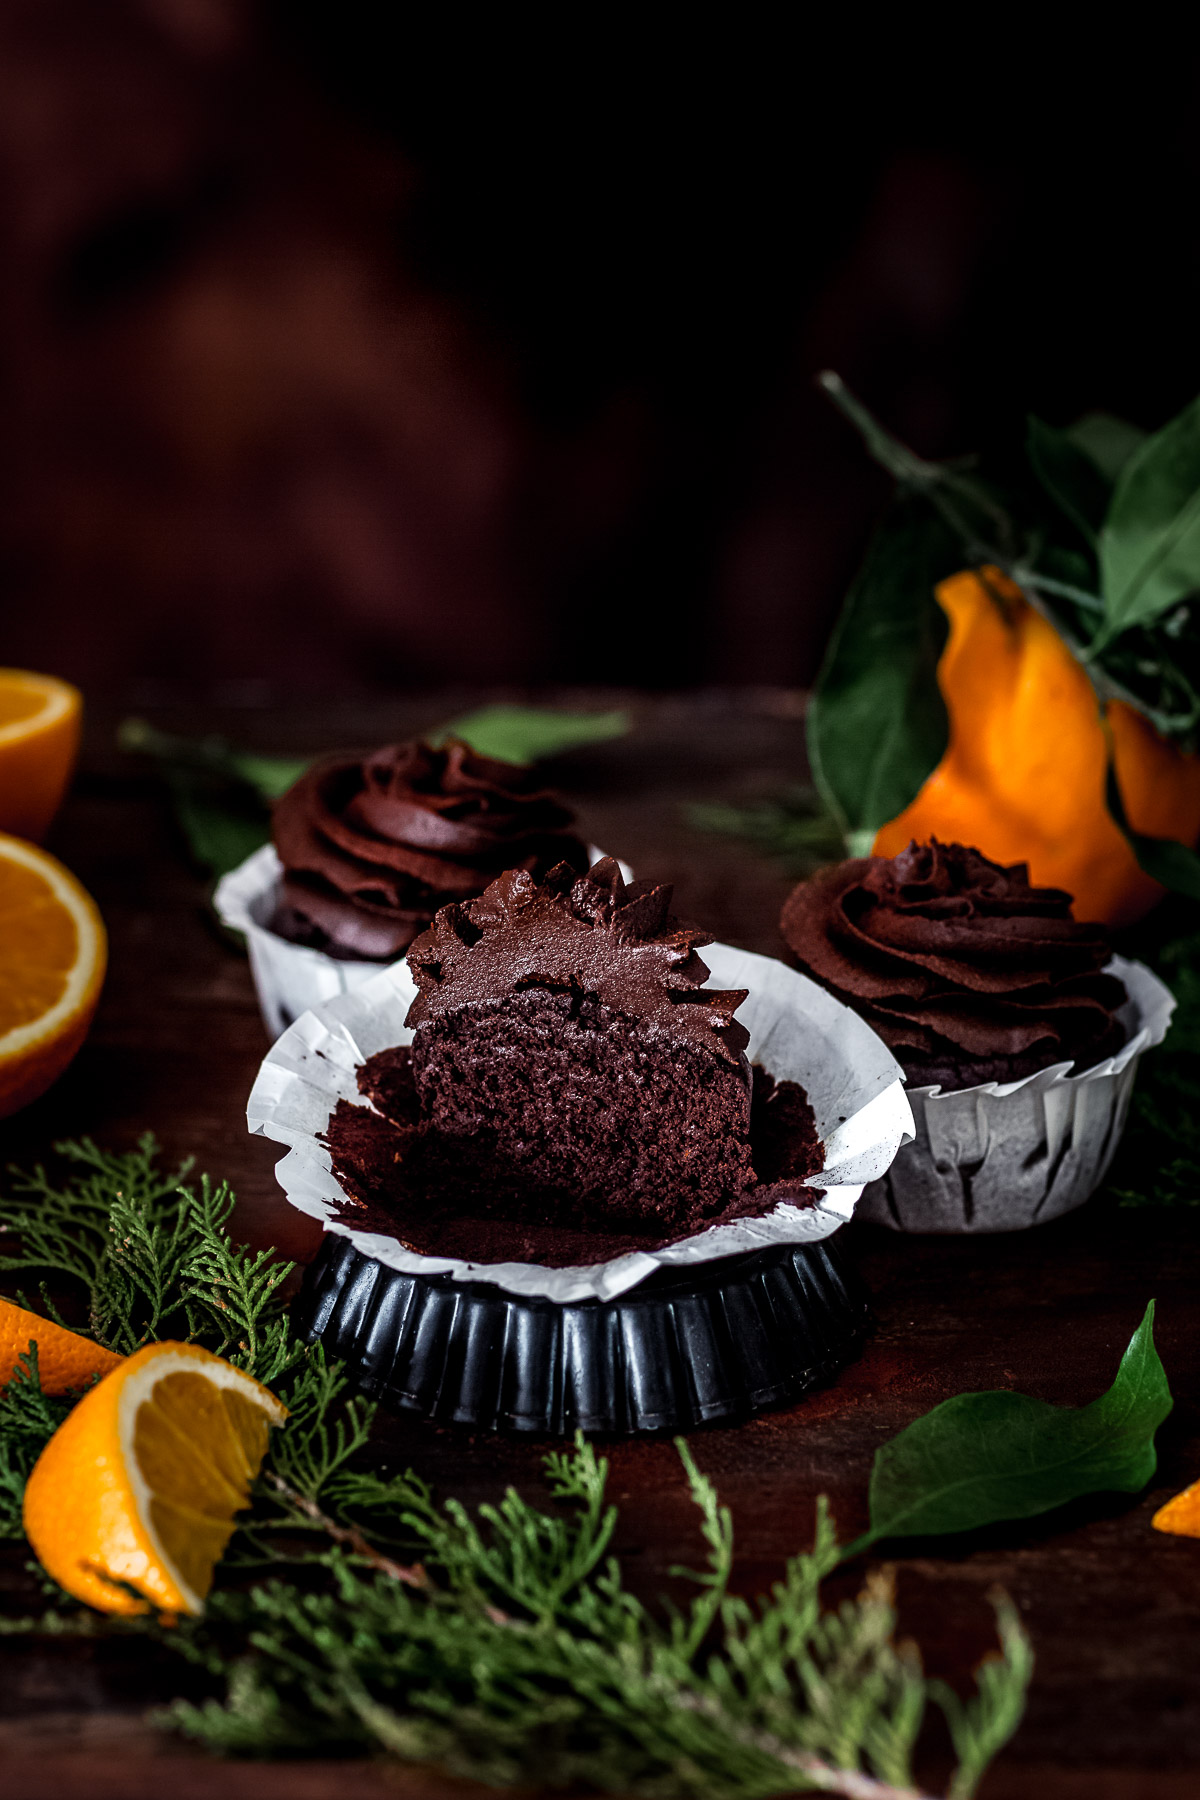 ricetta CUPCAKES VEGAN al CIOCCOLATO ARANCIA e ZUCCA con mousse al cioccolato datteri e zucca CHOCOLATE PUMPKIN CUPCAKES with orange and DATE CHOCOLATE frosting